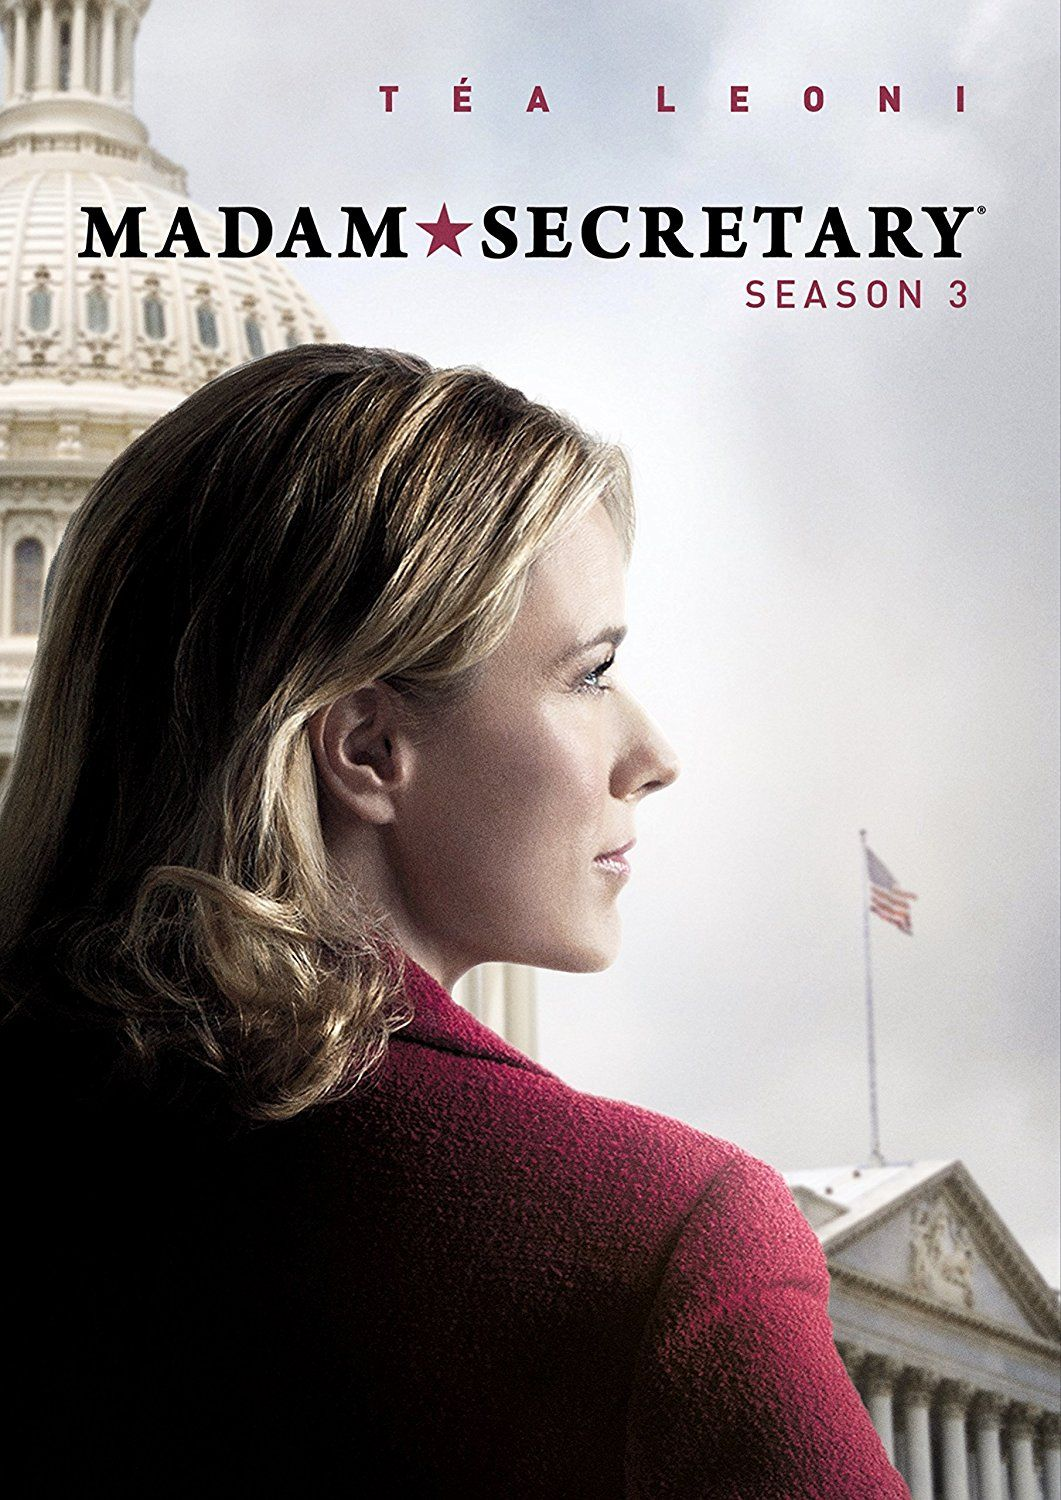 Madam Secretary Season Three Madam Secretary Secretary Movie Madame